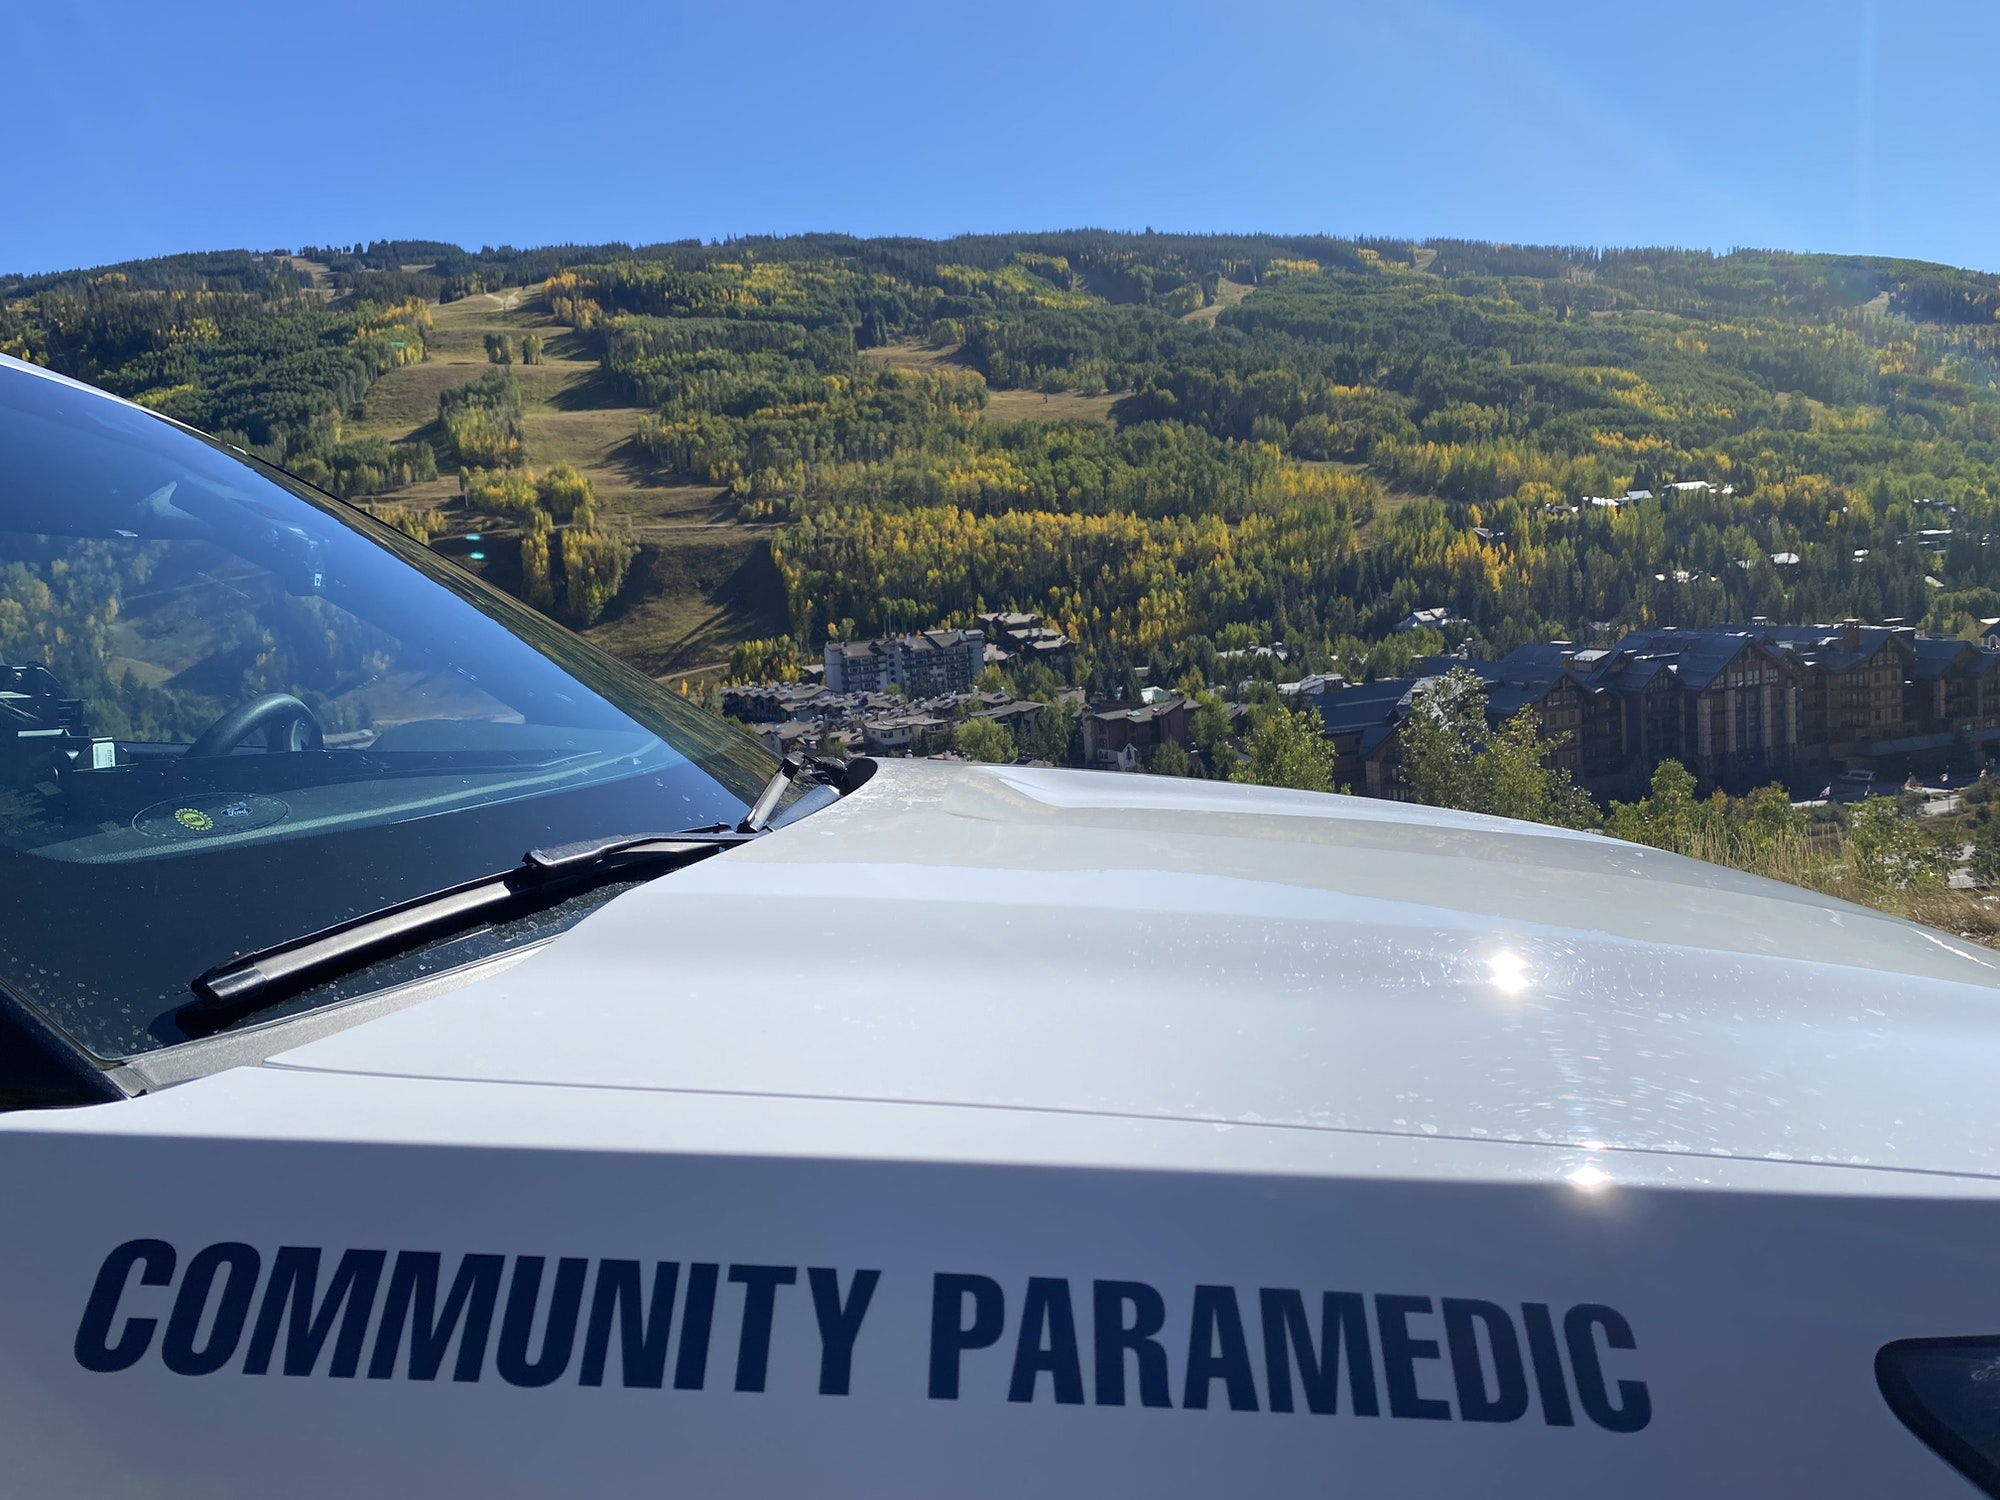 """Image of Community Paramedic SUV, close-up on the words """"Community Paramedic"""" with a mountain and yellow aspen leaves in the background."""